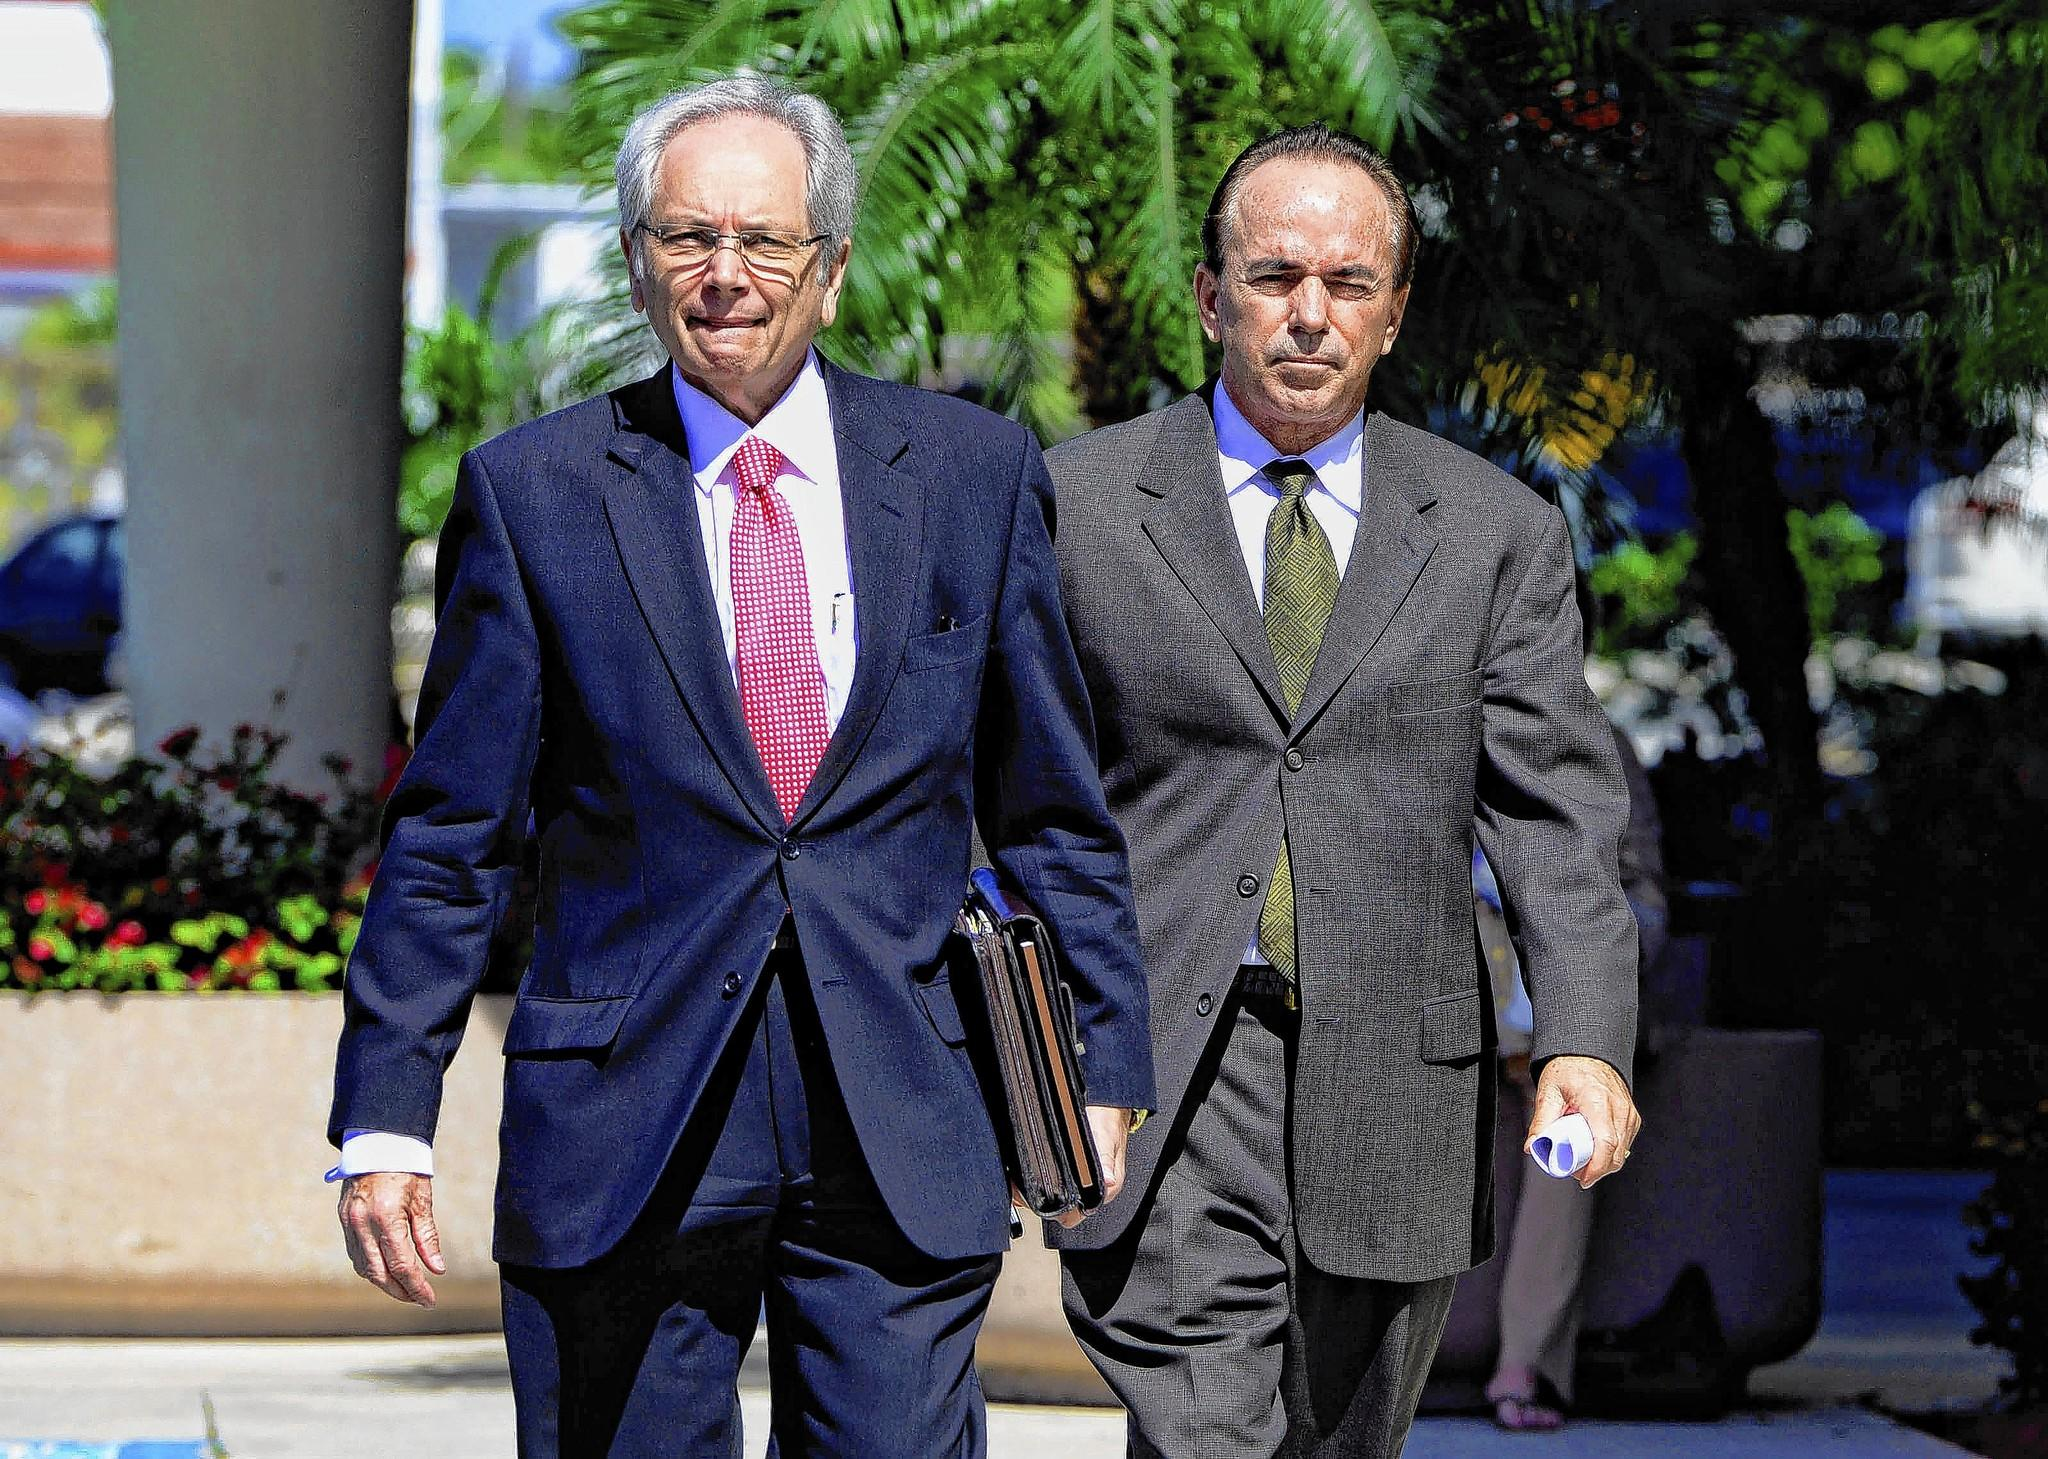 Doug Bates, (right) a Broward County lawyer, leaves Federal Court in West Palm Beach with his attorney, Leonard Sands, after pleading guilty to one count of conspiracy to commit wire fraud in connection with the Scott Rothstein's ponzi scheme.